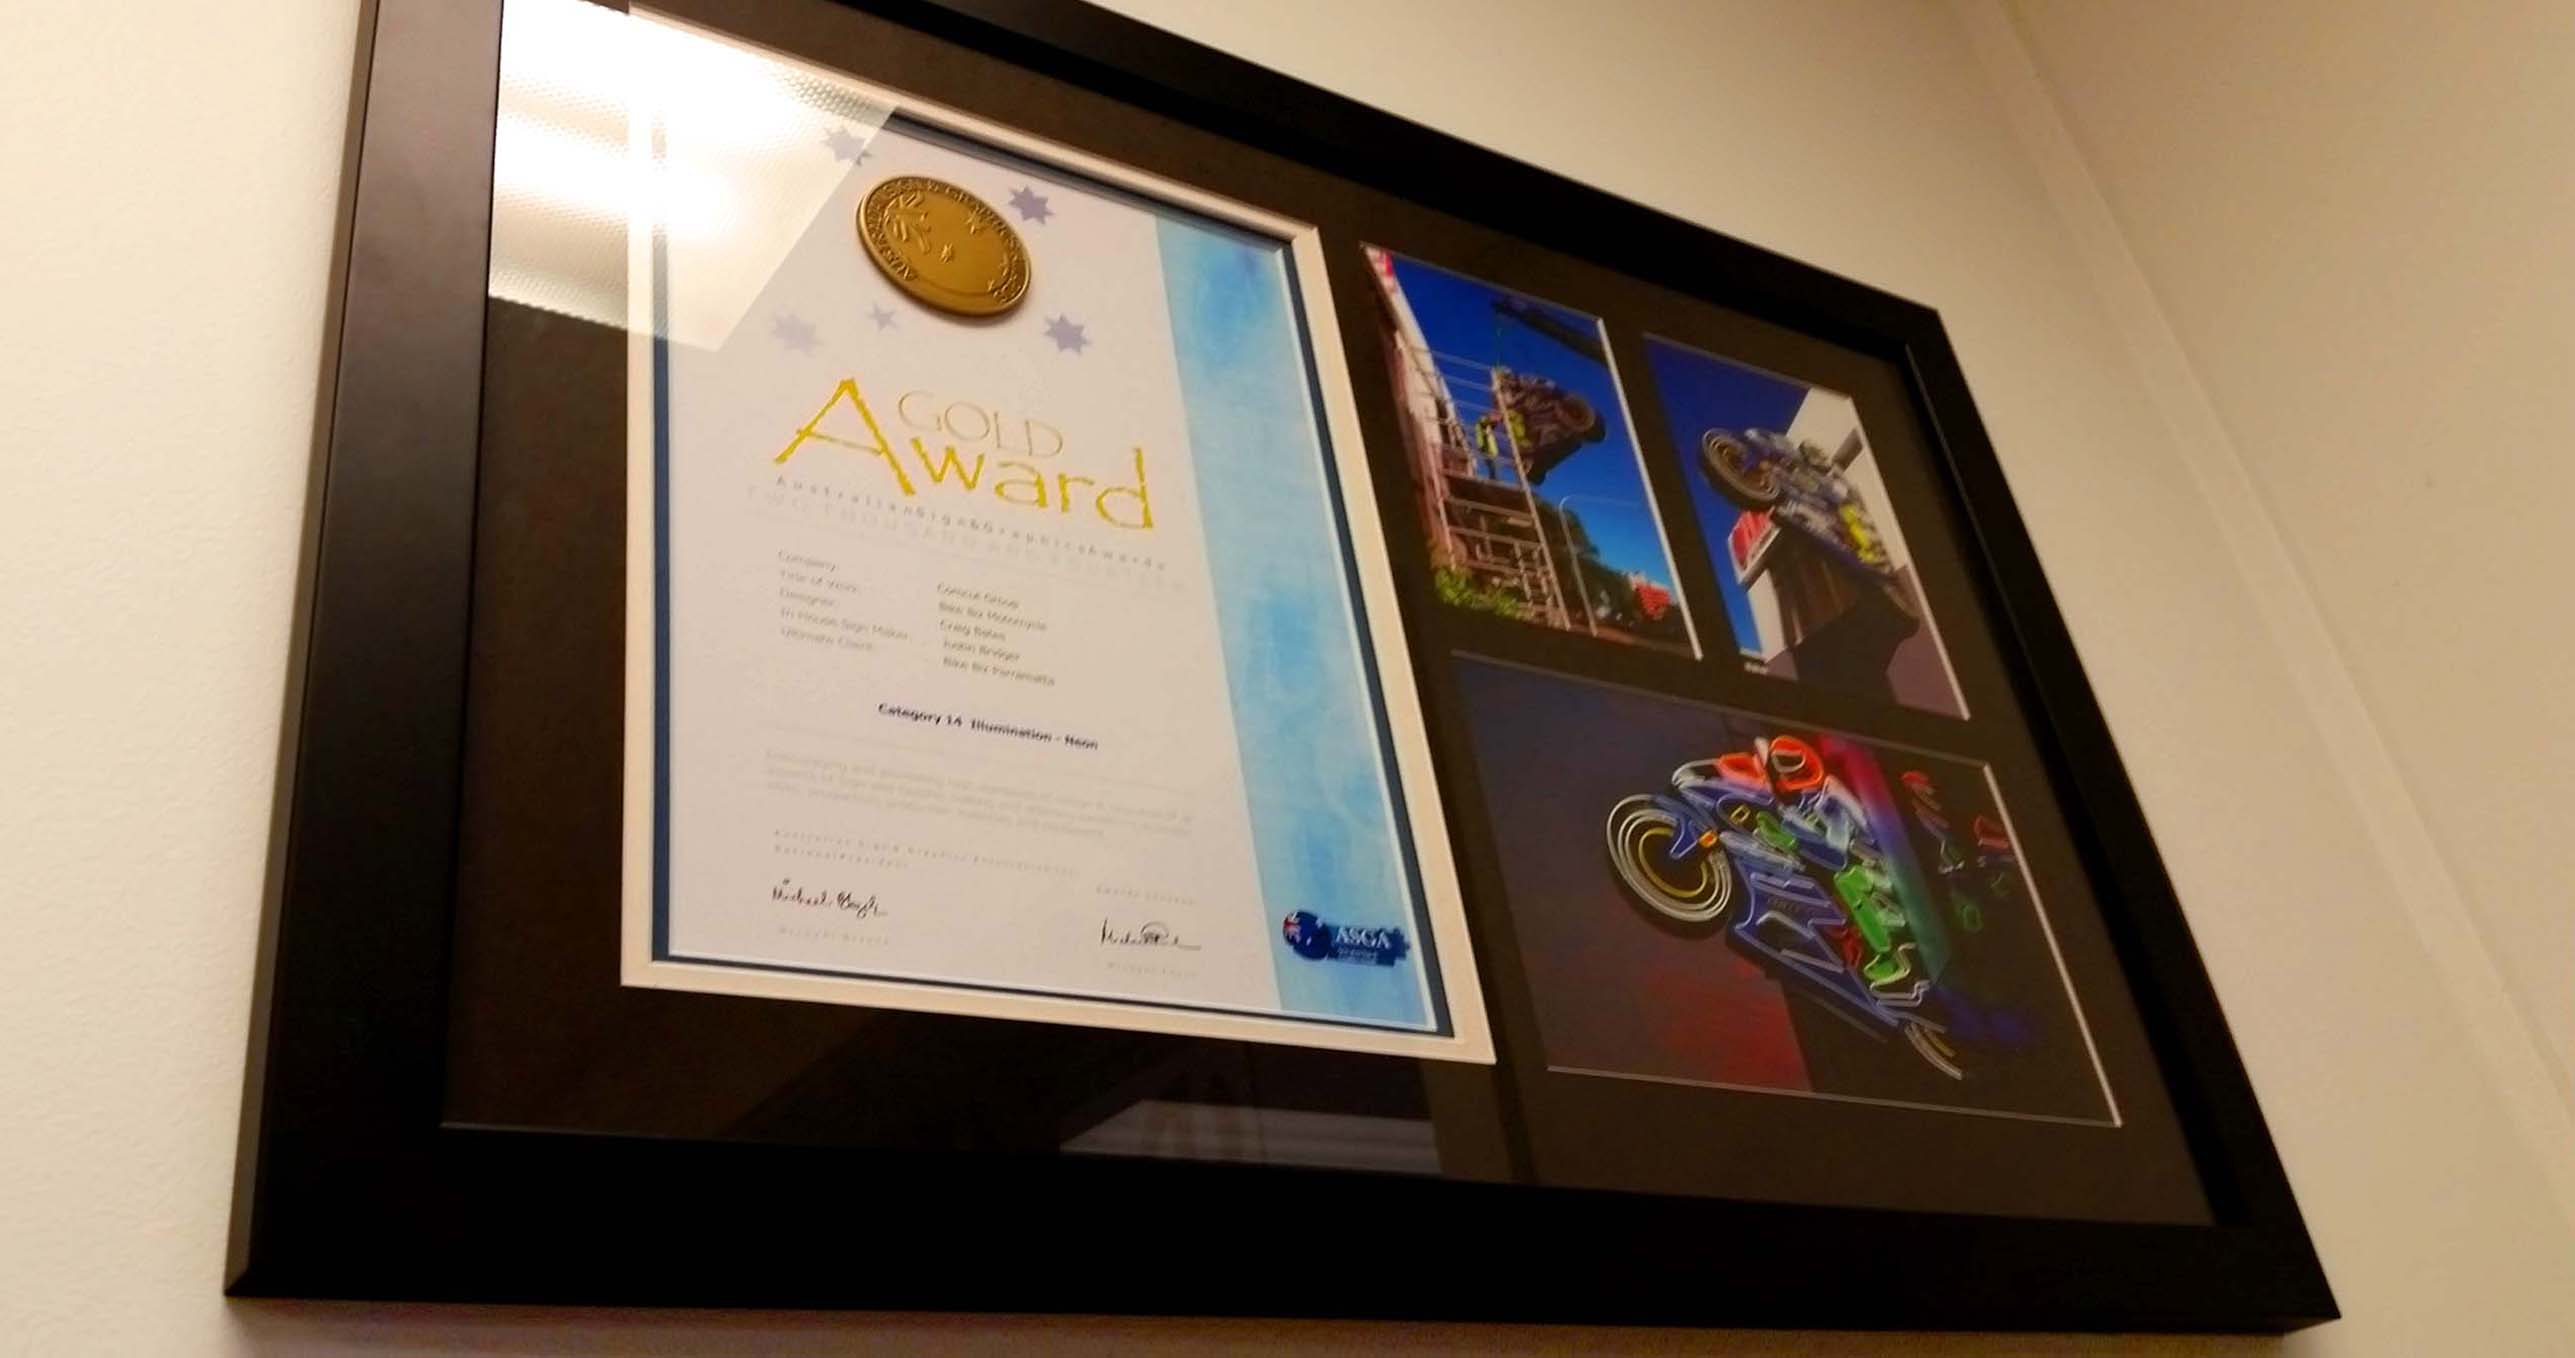 2-Gold-award-frame